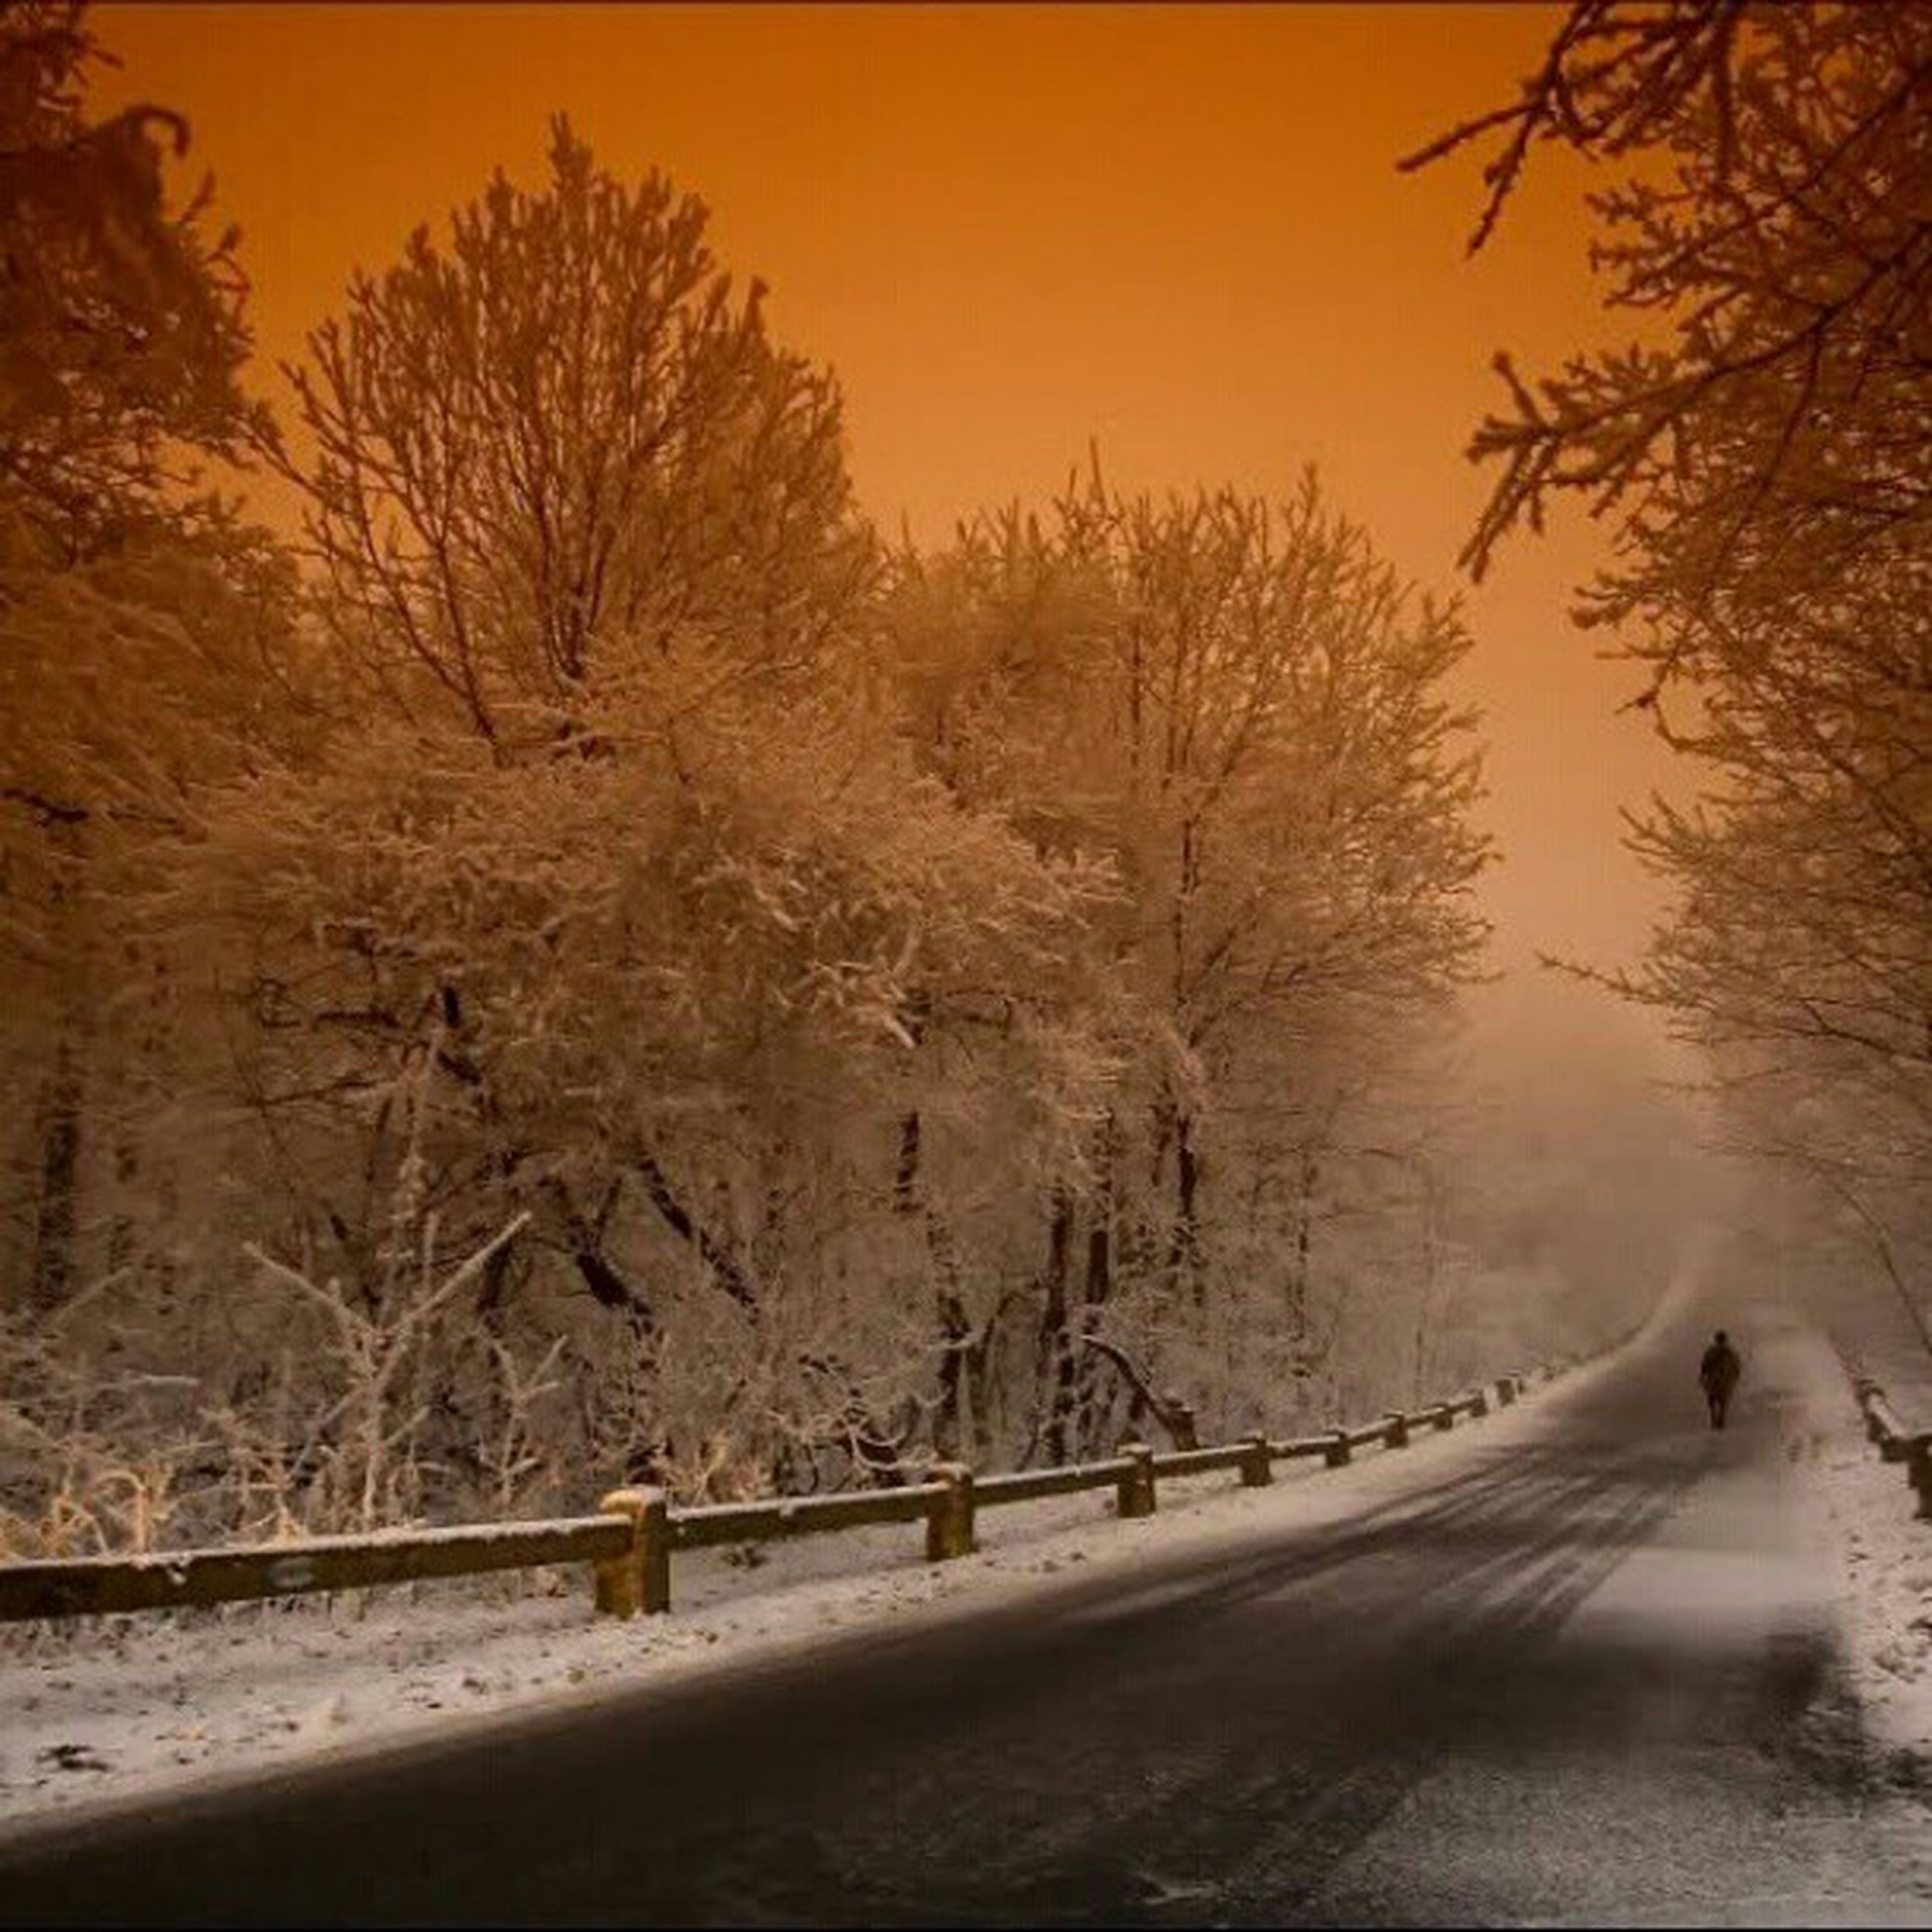 snow, winter, tree, cold temperature, season, bare tree, tranquility, tranquil scene, nature, beauty in nature, scenics, weather, road, branch, the way forward, sunset, frozen, non-urban scene, landscape, outdoors